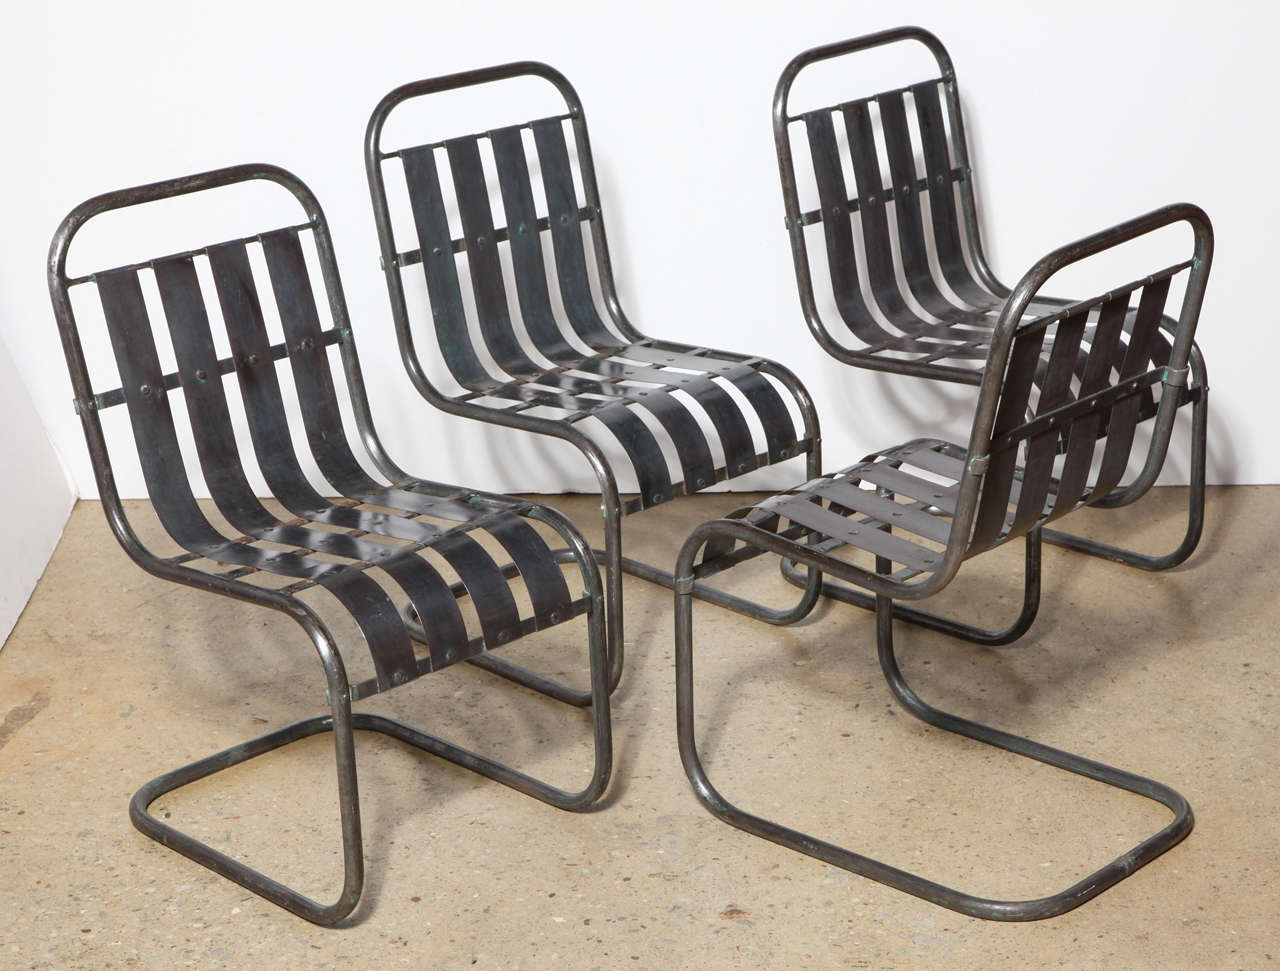 Exceptionnel Set Of Four Industrial Steel Spring Rocker Side Chairs, Circa 1930